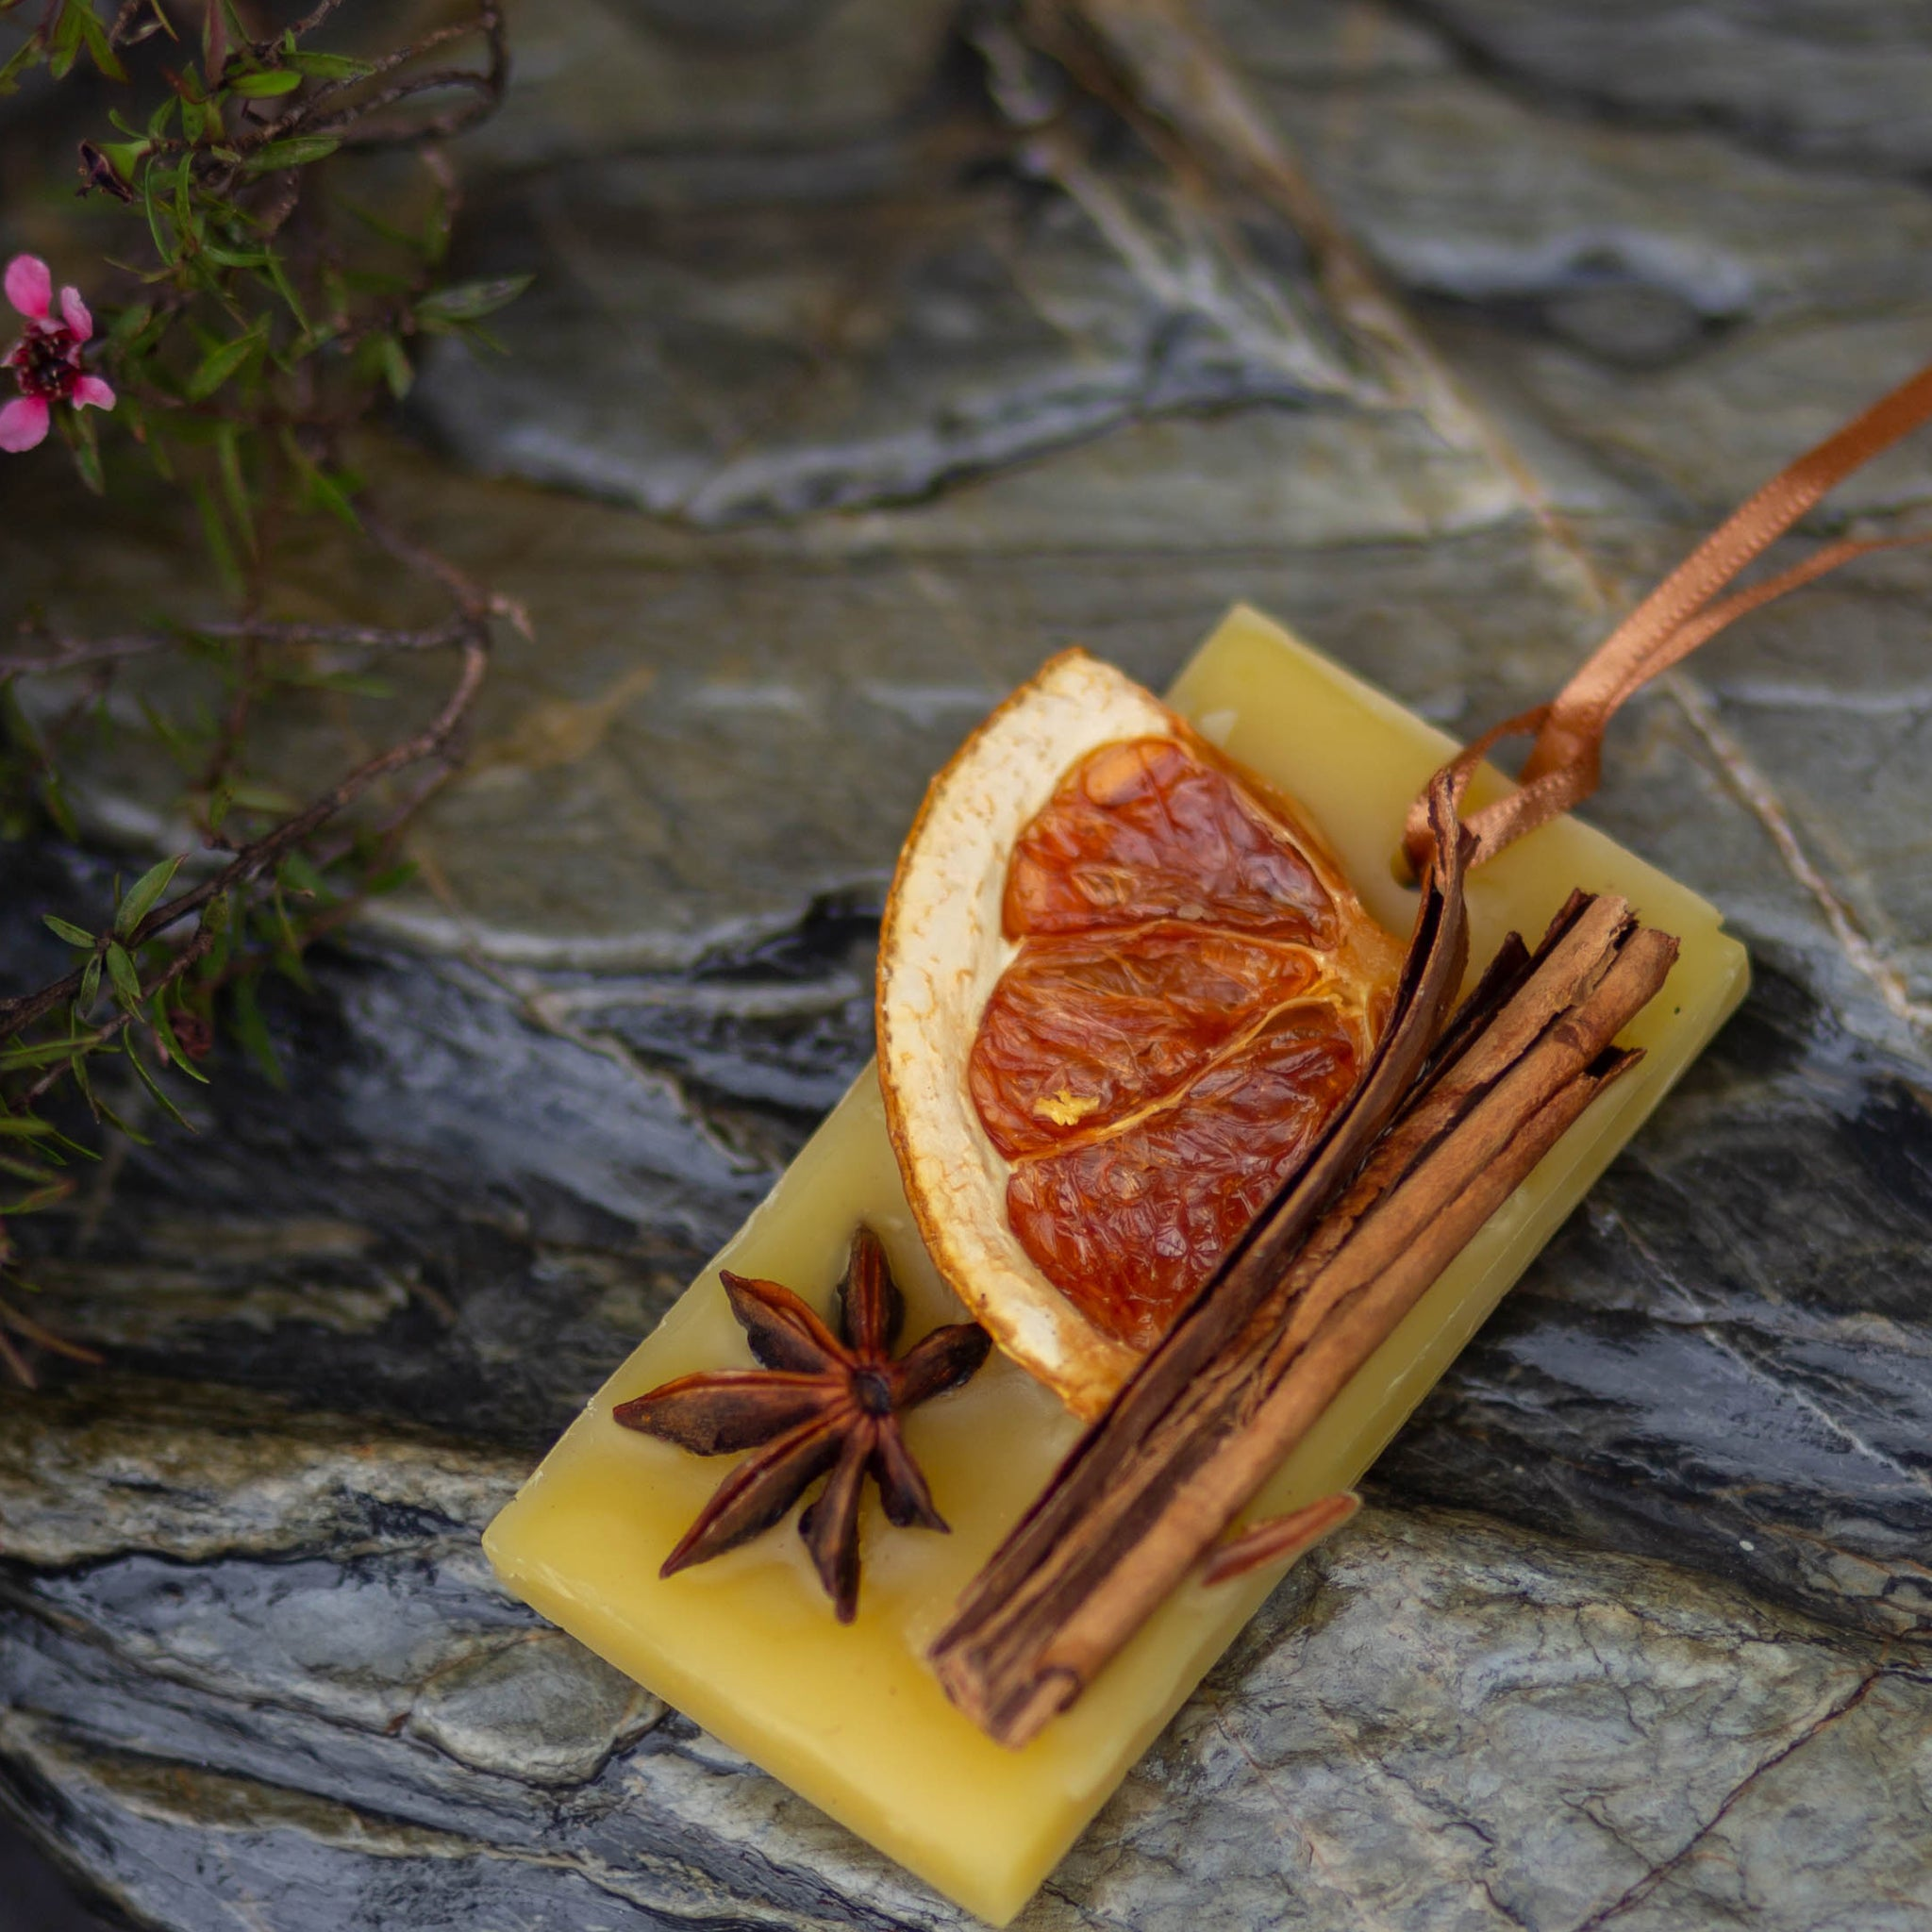 Scented Wax Tablet - Cinnamon, Sweet Orange and Star Anise-NZ Native Oils Ltd